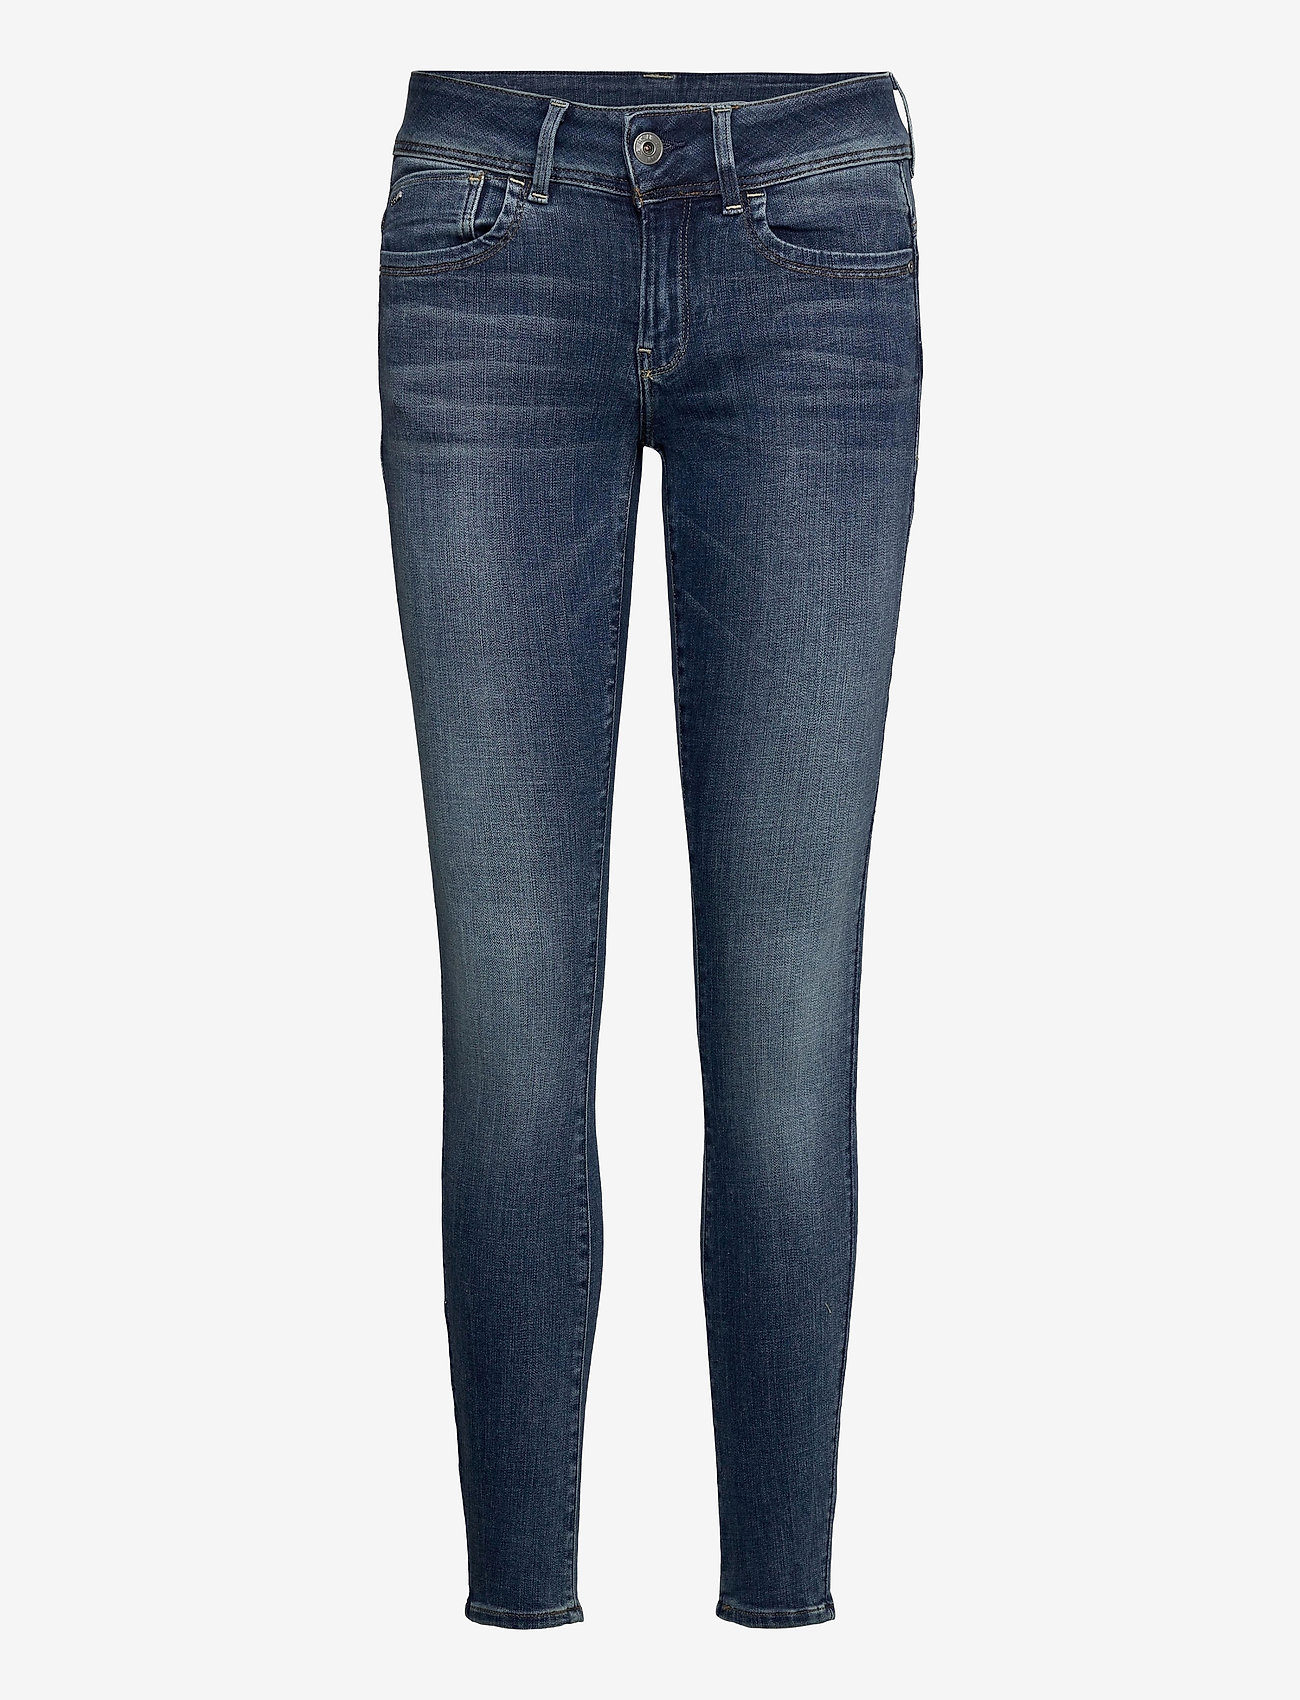 G-star RAW - Lynn Mid Super Skinny Wmn - skinny jeans - faded blue - 0